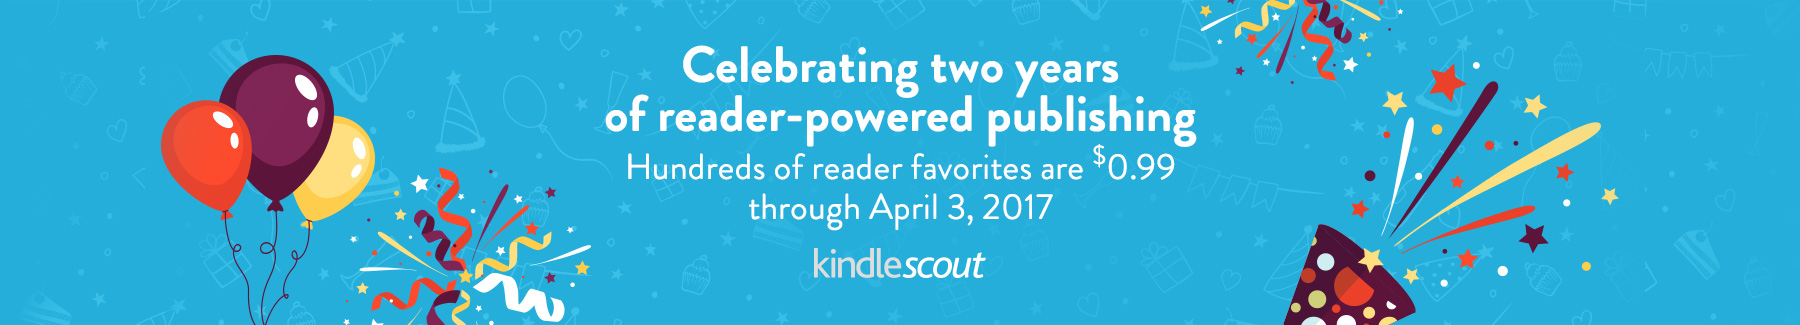 Celebrating two years of reader-powered publishing. Hundreds of reader favorites are $0.99 through April 3, 2017.